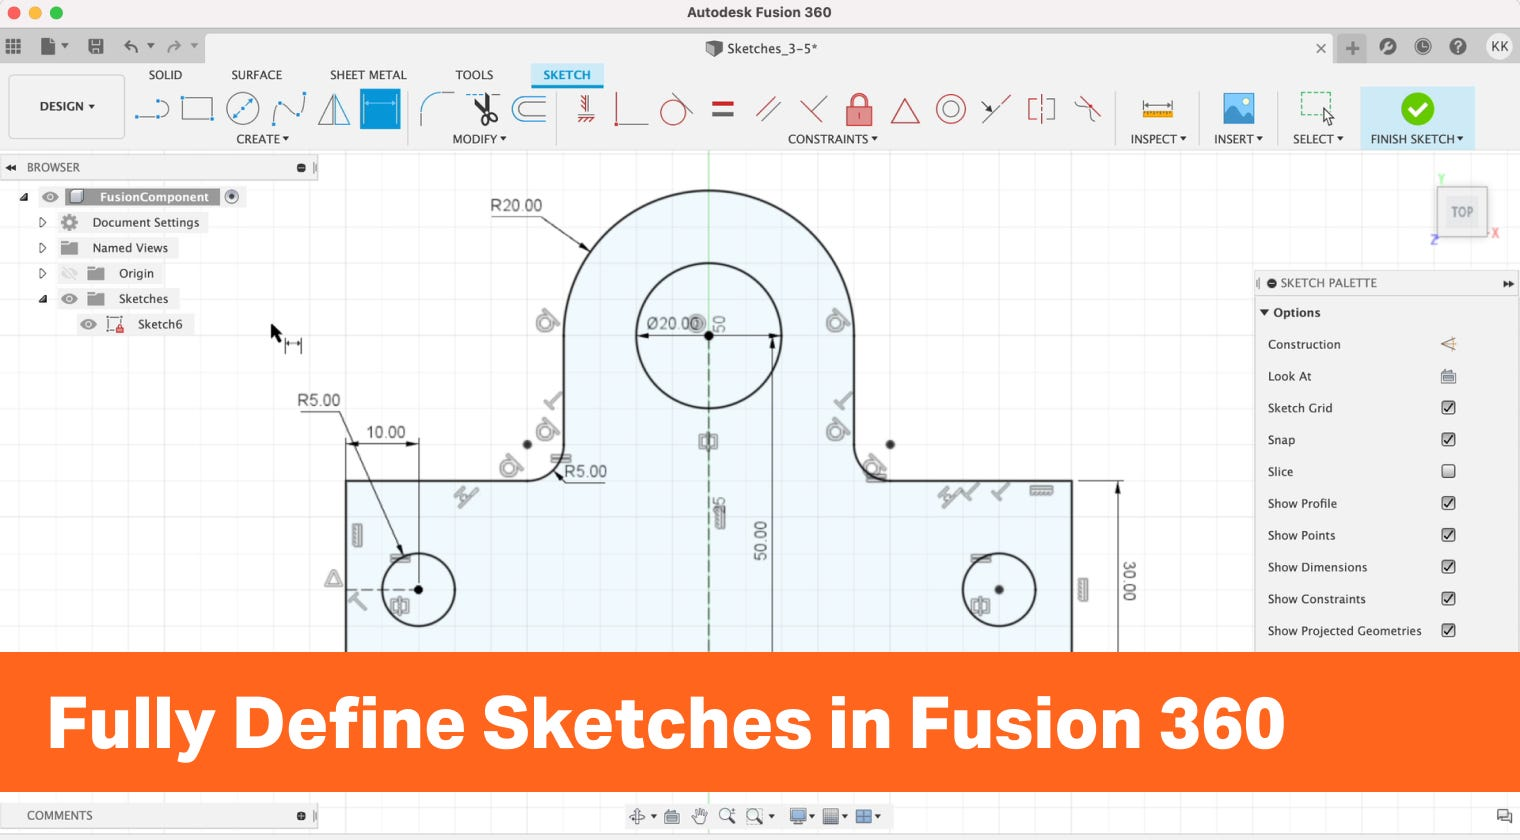 Fully Define Sketches in Fusion 360